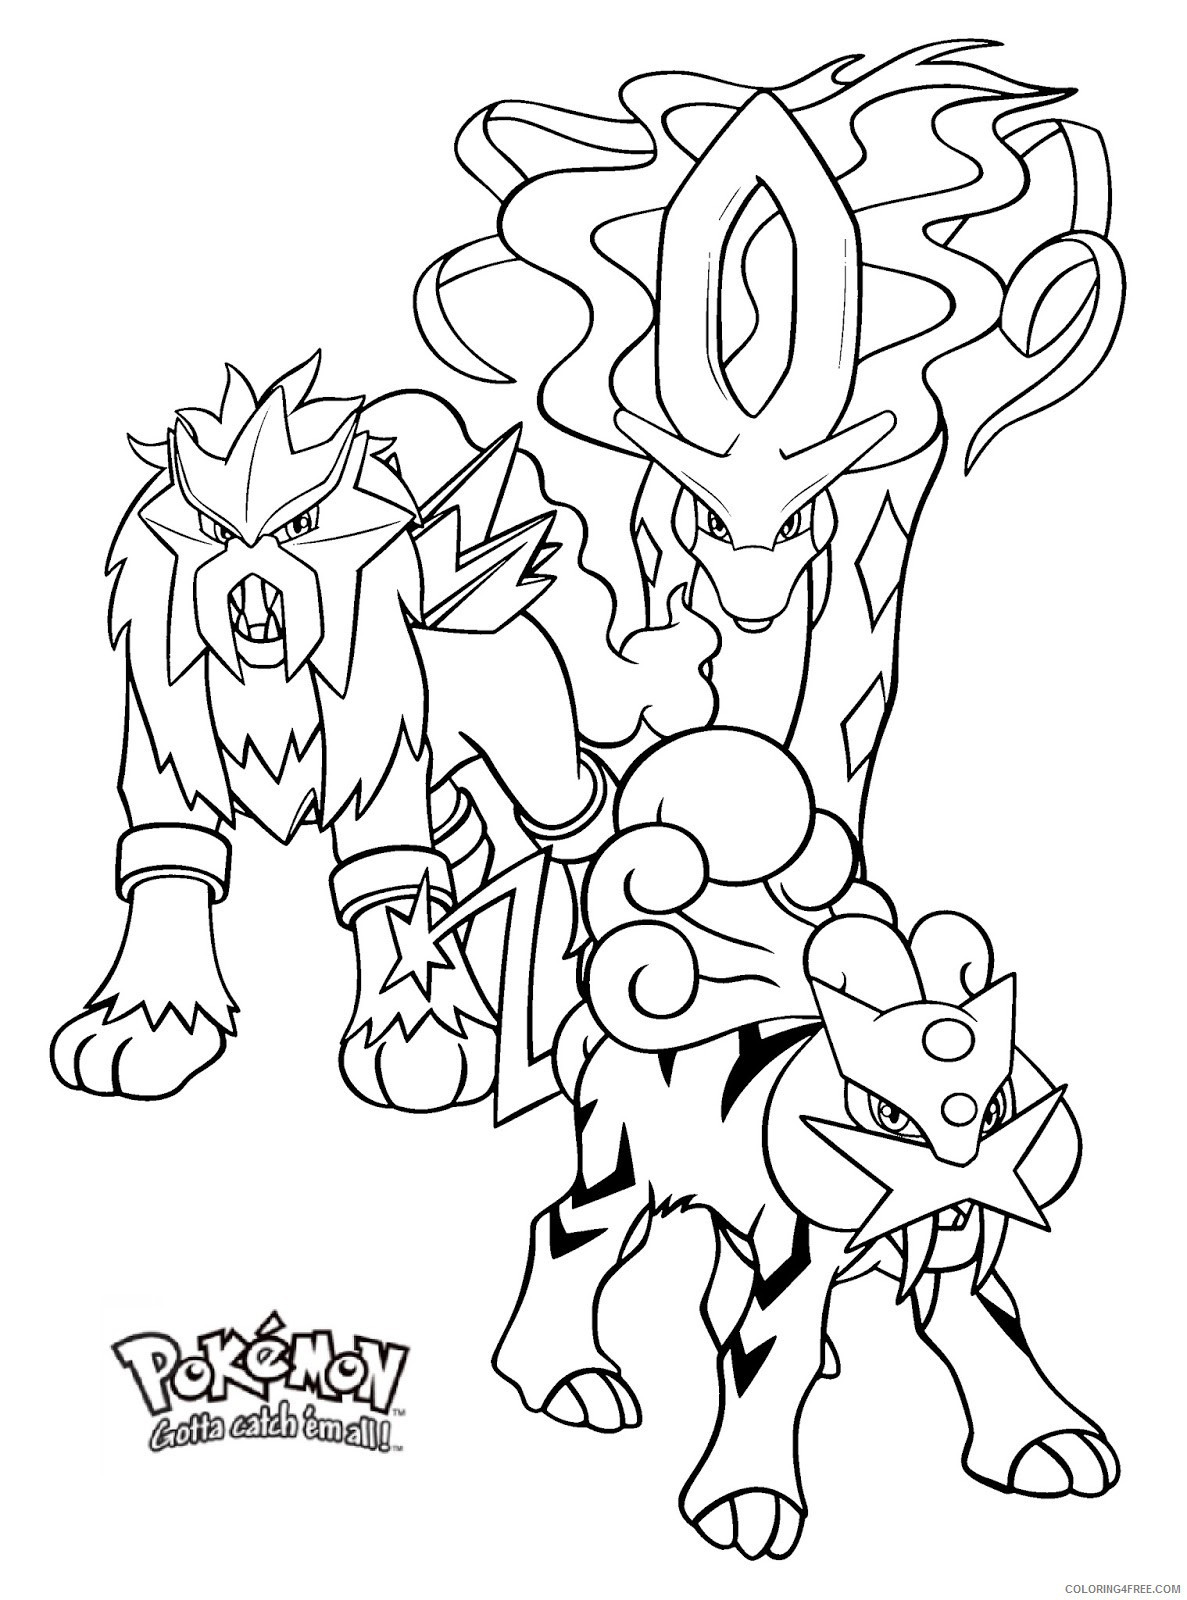 pokemon-raikou-coloring-pages-of-pokemon-raikou-coloring-pages Pokemon Raikou Coloring Pages Cartoon